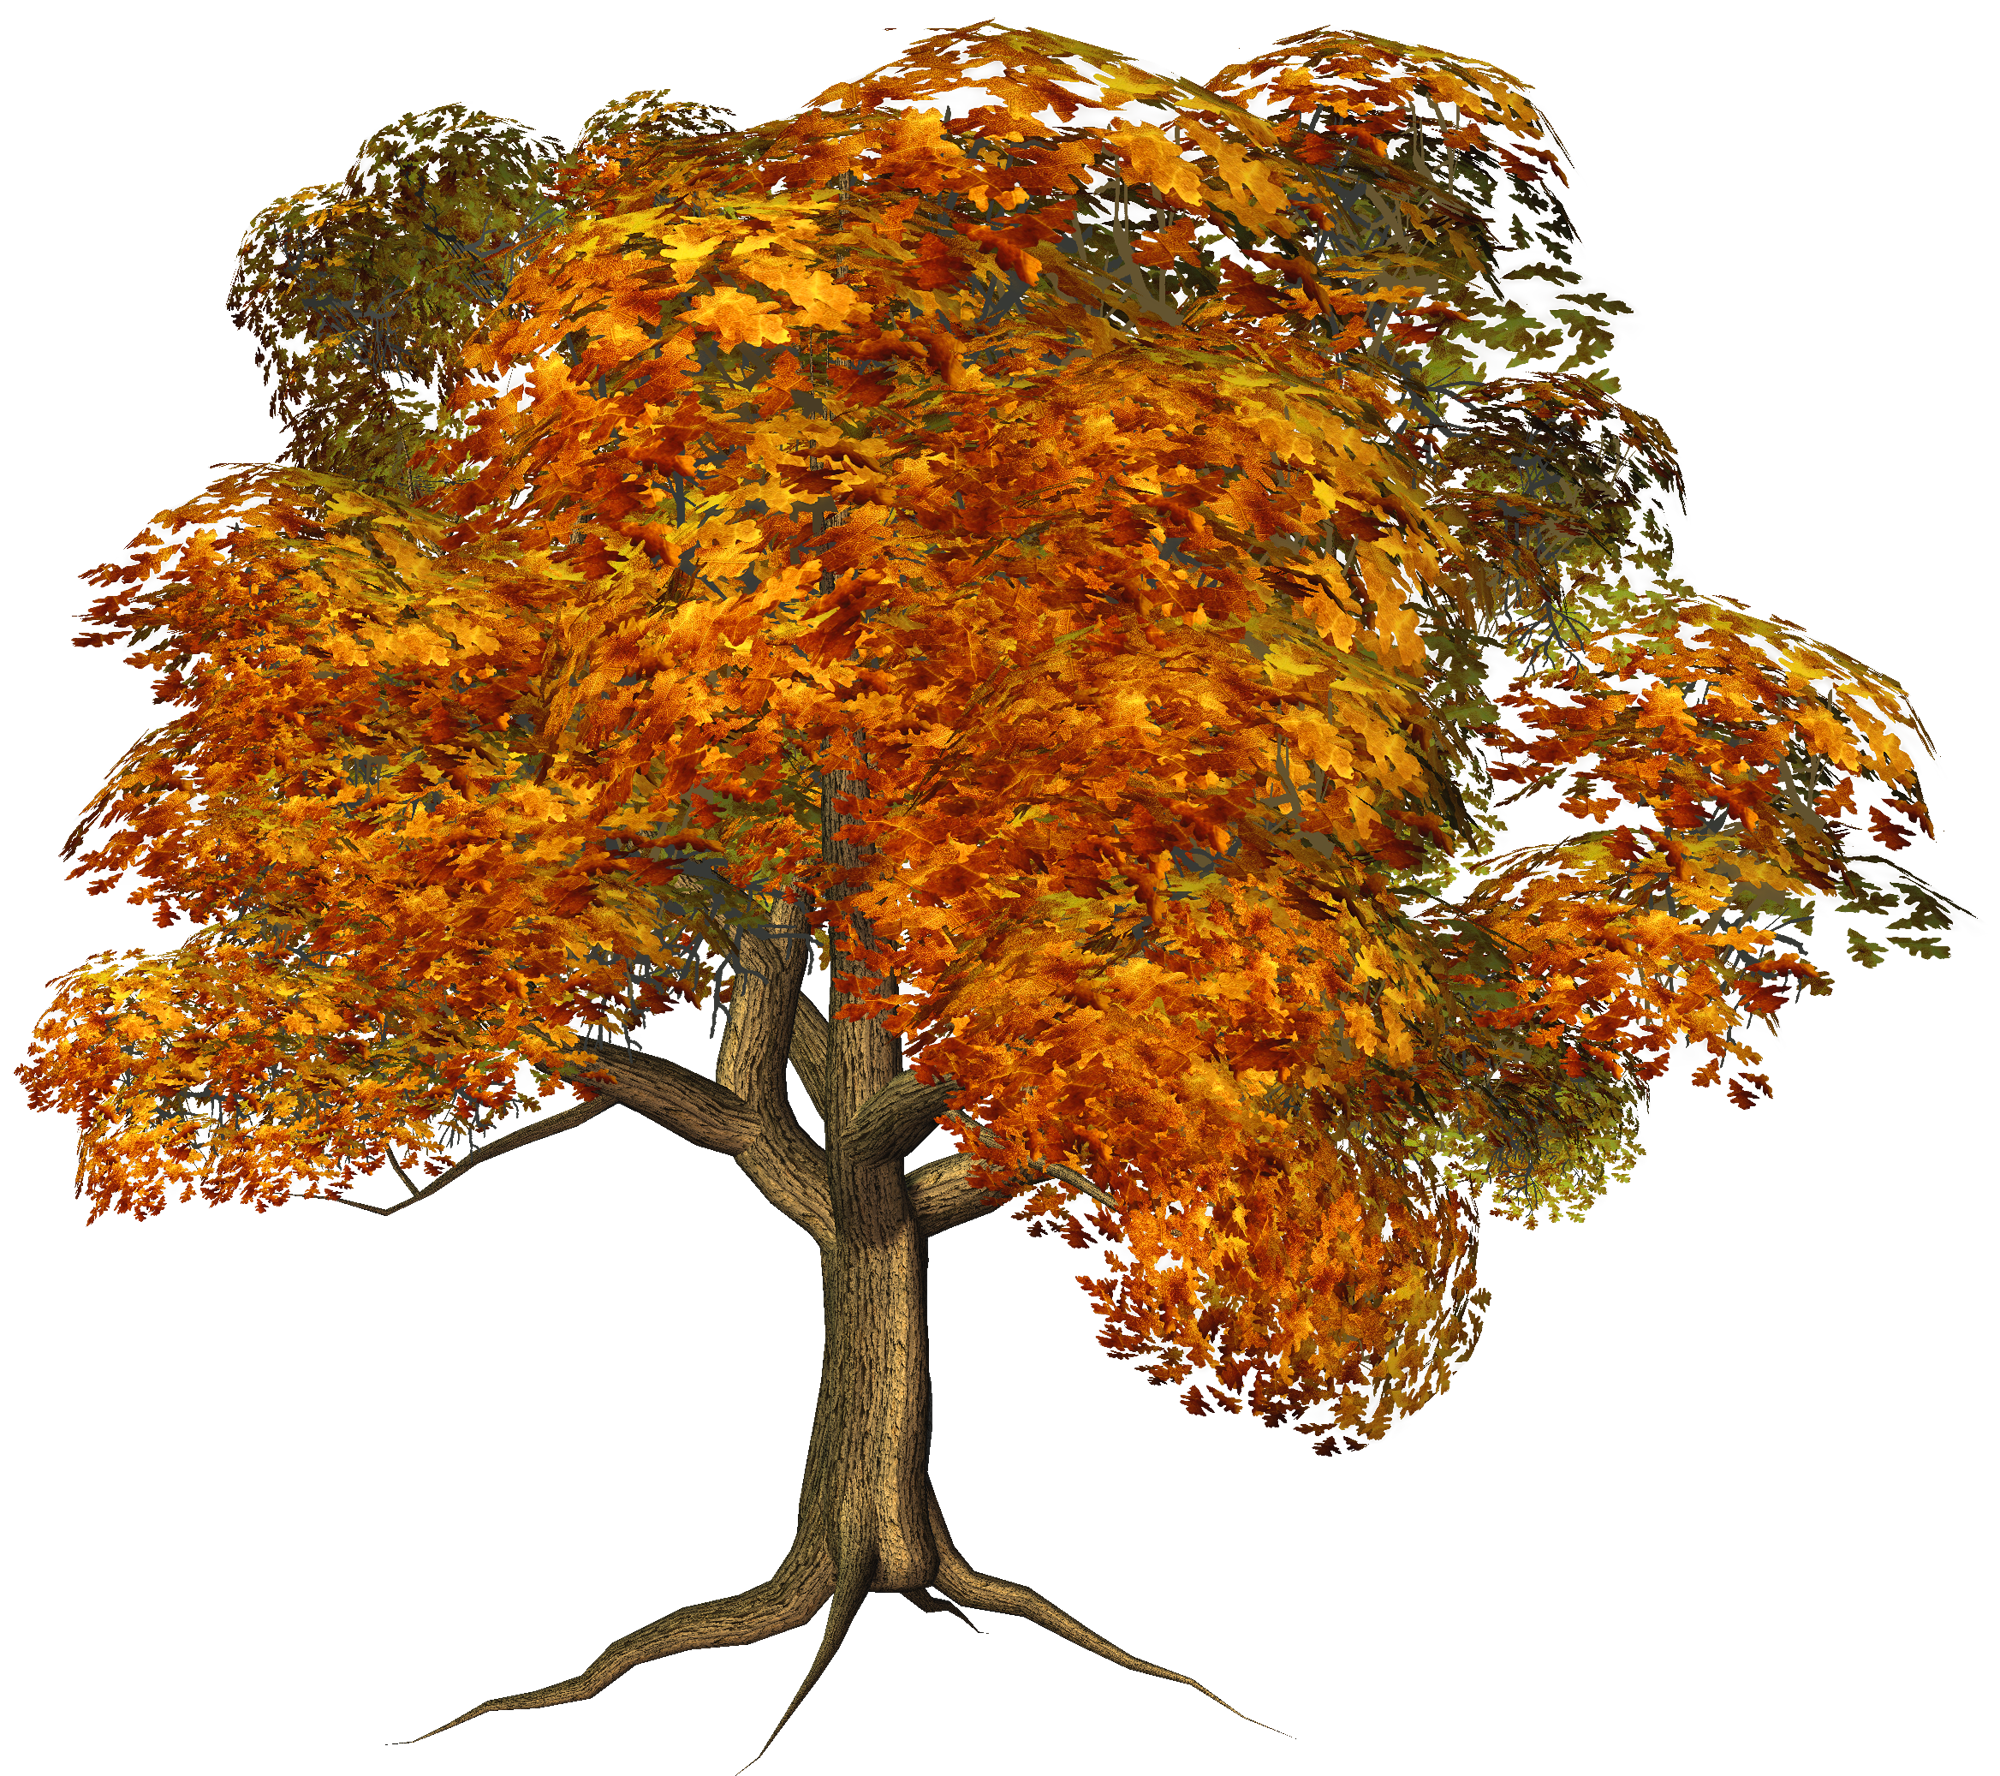 Diversity tree clipart banner library download Large Fall Tree Clipart | Trees | Pinterest | Fall trees banner library download